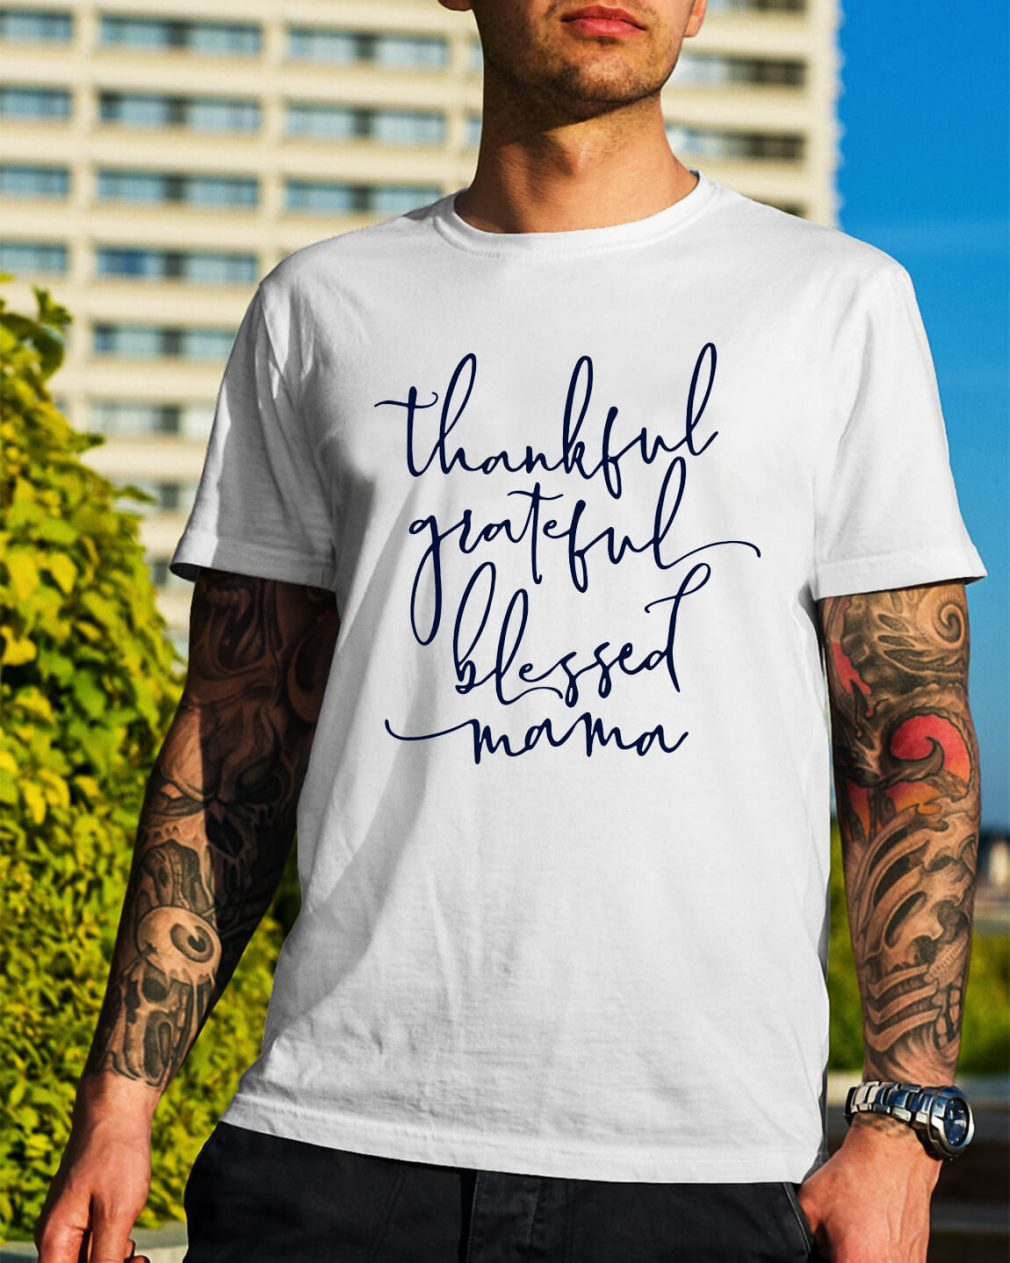 Thankful grateful blessed Mama shirt